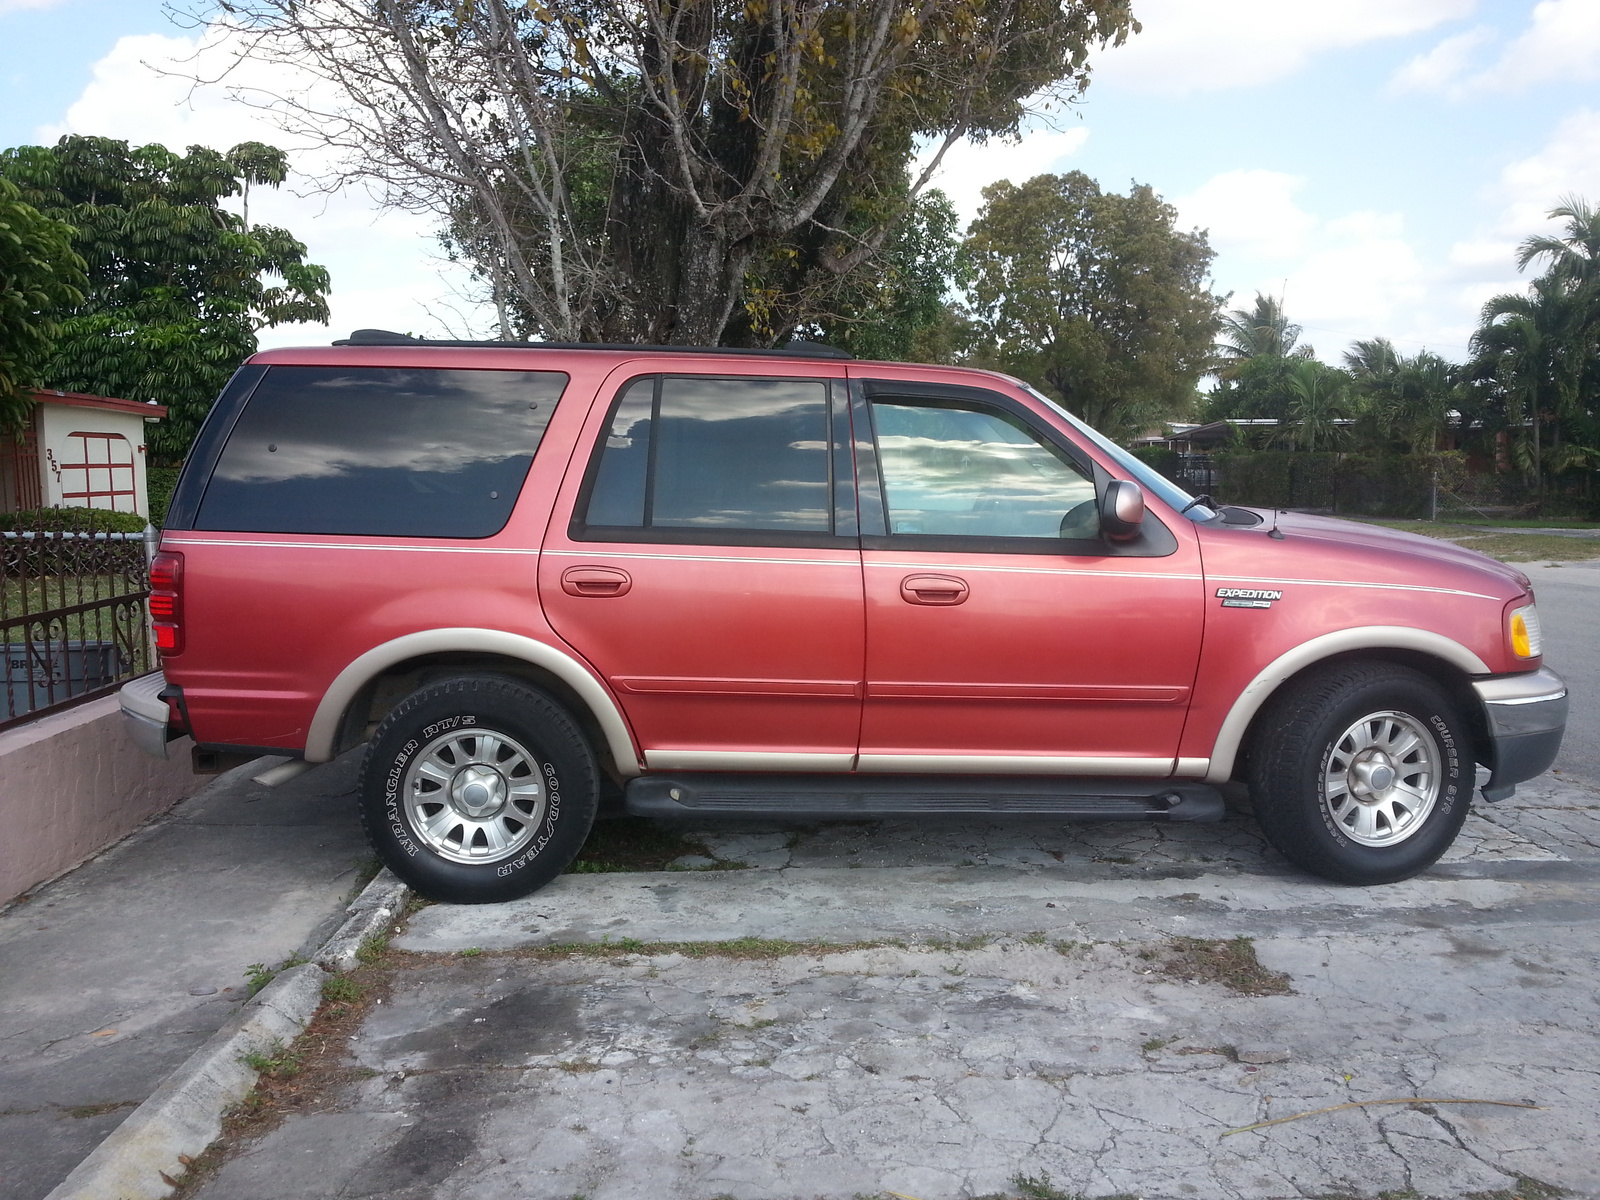 Nc together with 1996 Toyota Rav4 Awd as well 2004 F150 Fuse Box Wiring Harness also Ford Focus 2 0 1996 Specs And Images also Watch. on 2004 ford explorer